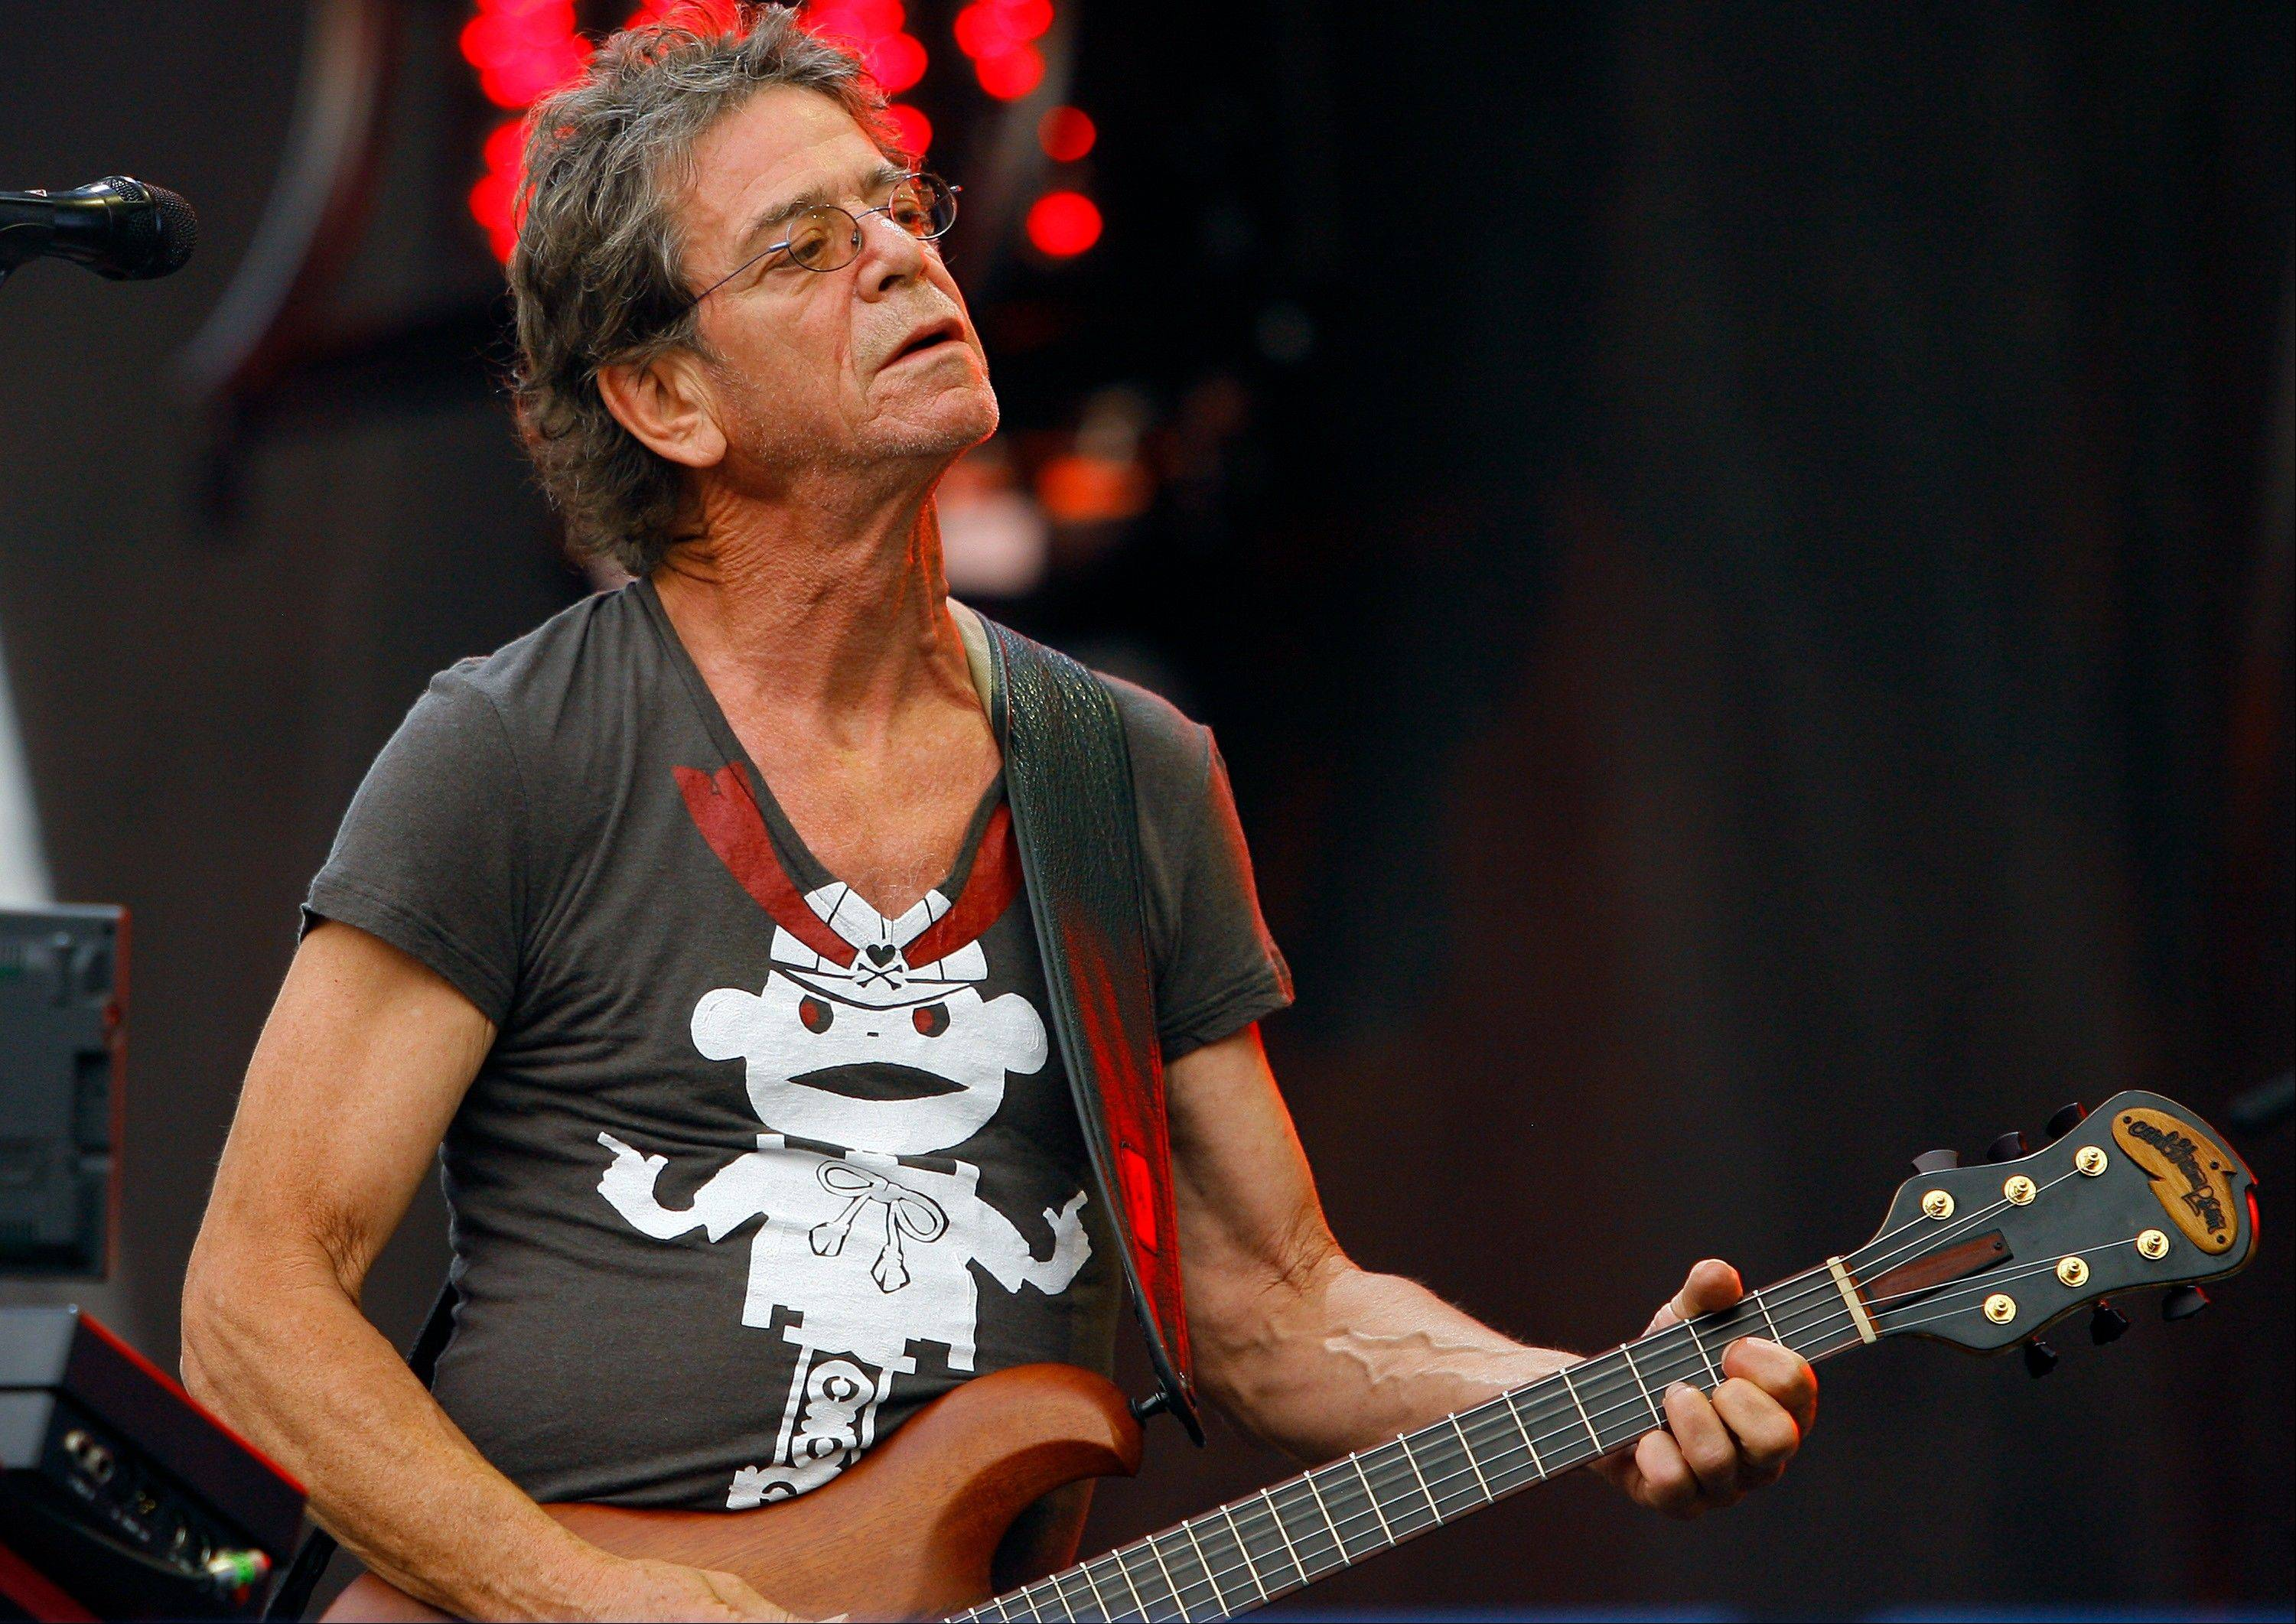 Lou Reed performs at the Lollapalooza music festival, in Chicago.